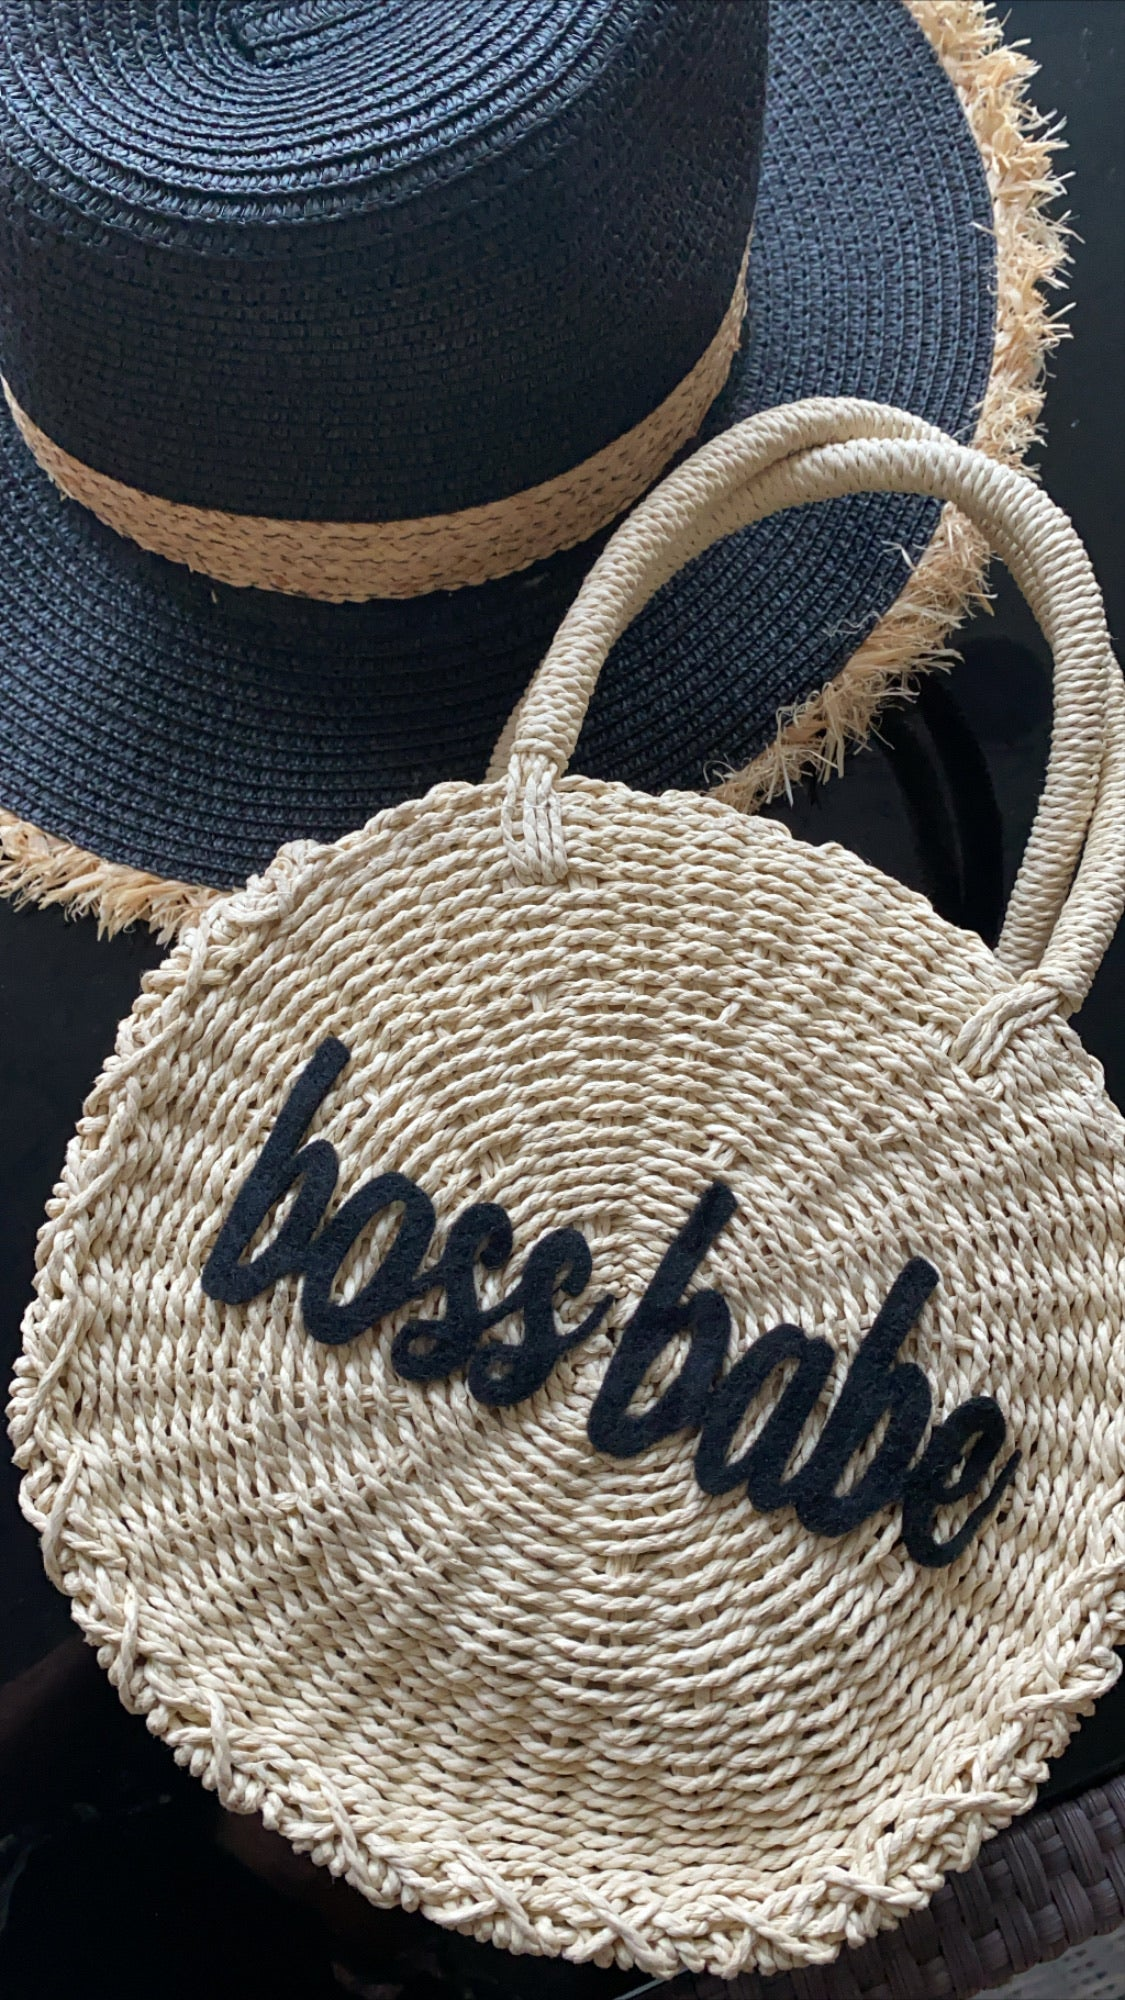 PERSONALIZED STRAW BAG